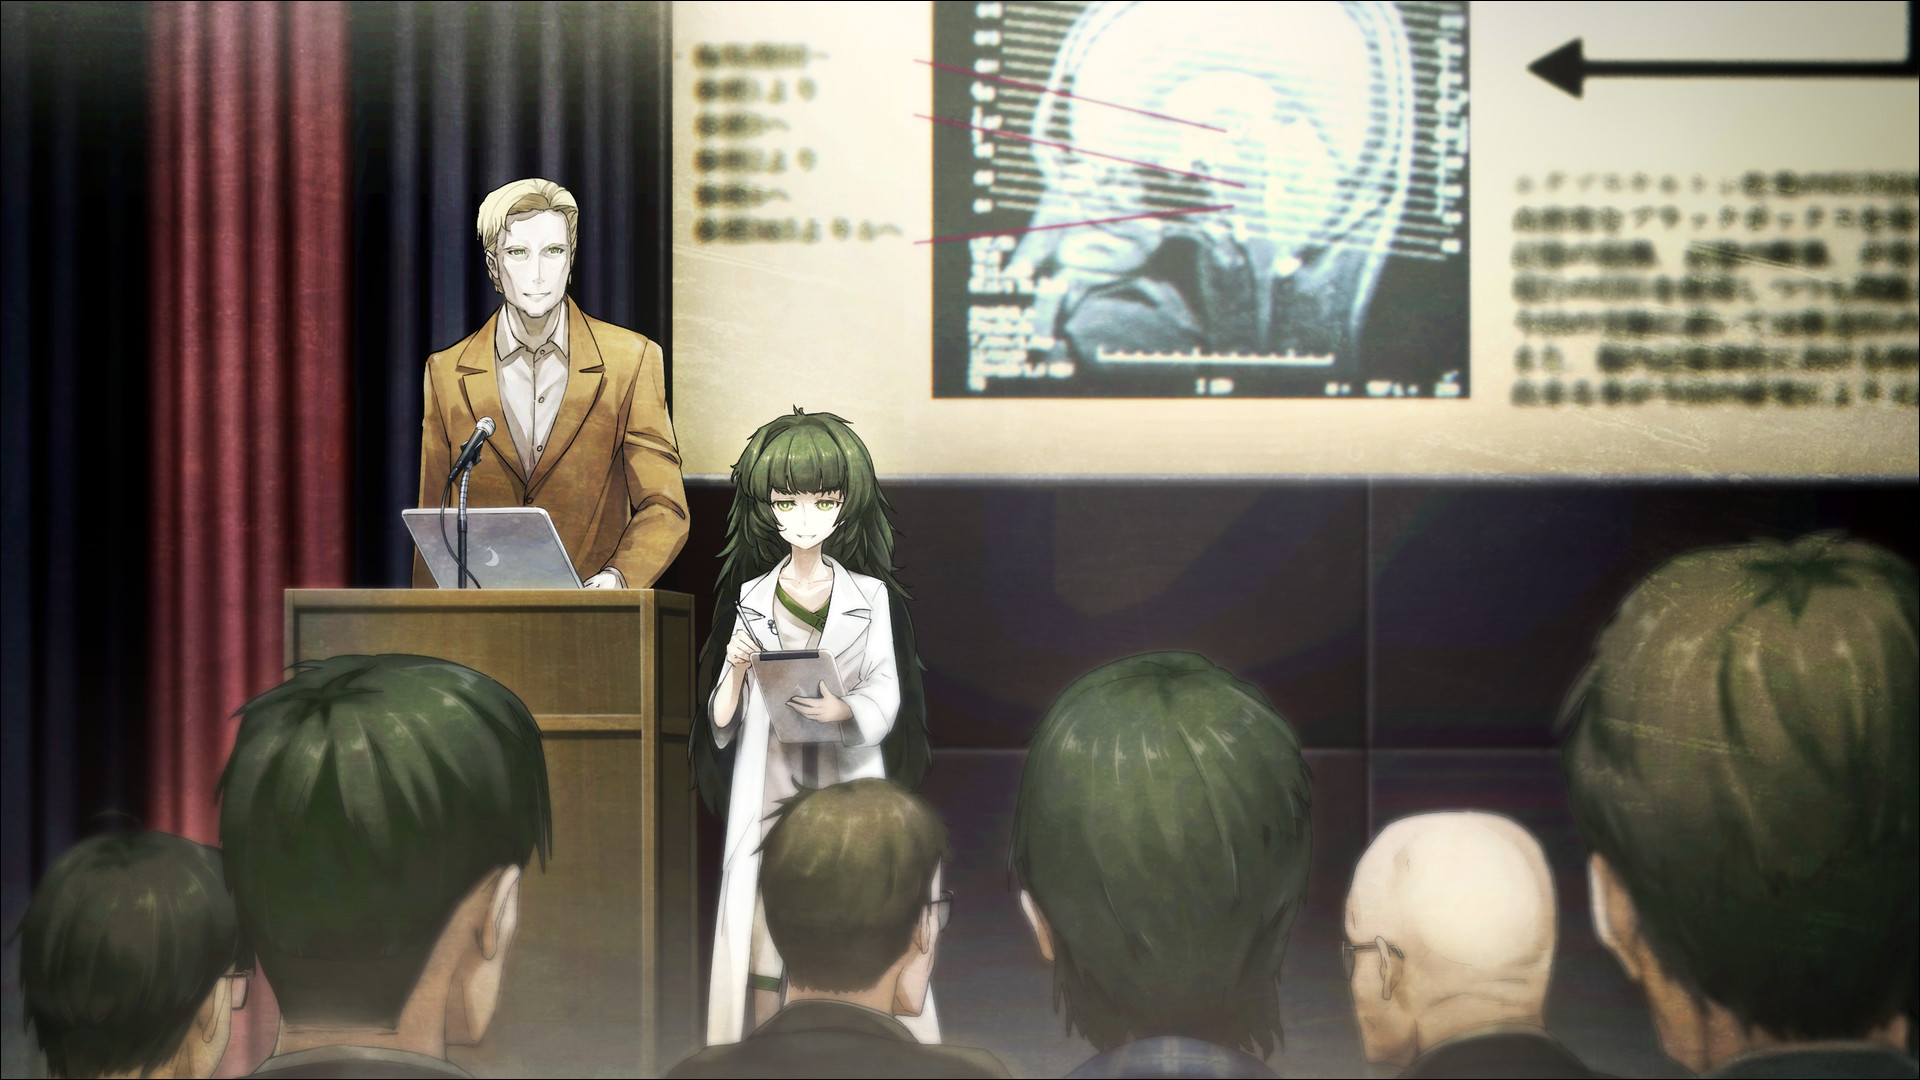 Find the best laptop for STEINS;GATE 0